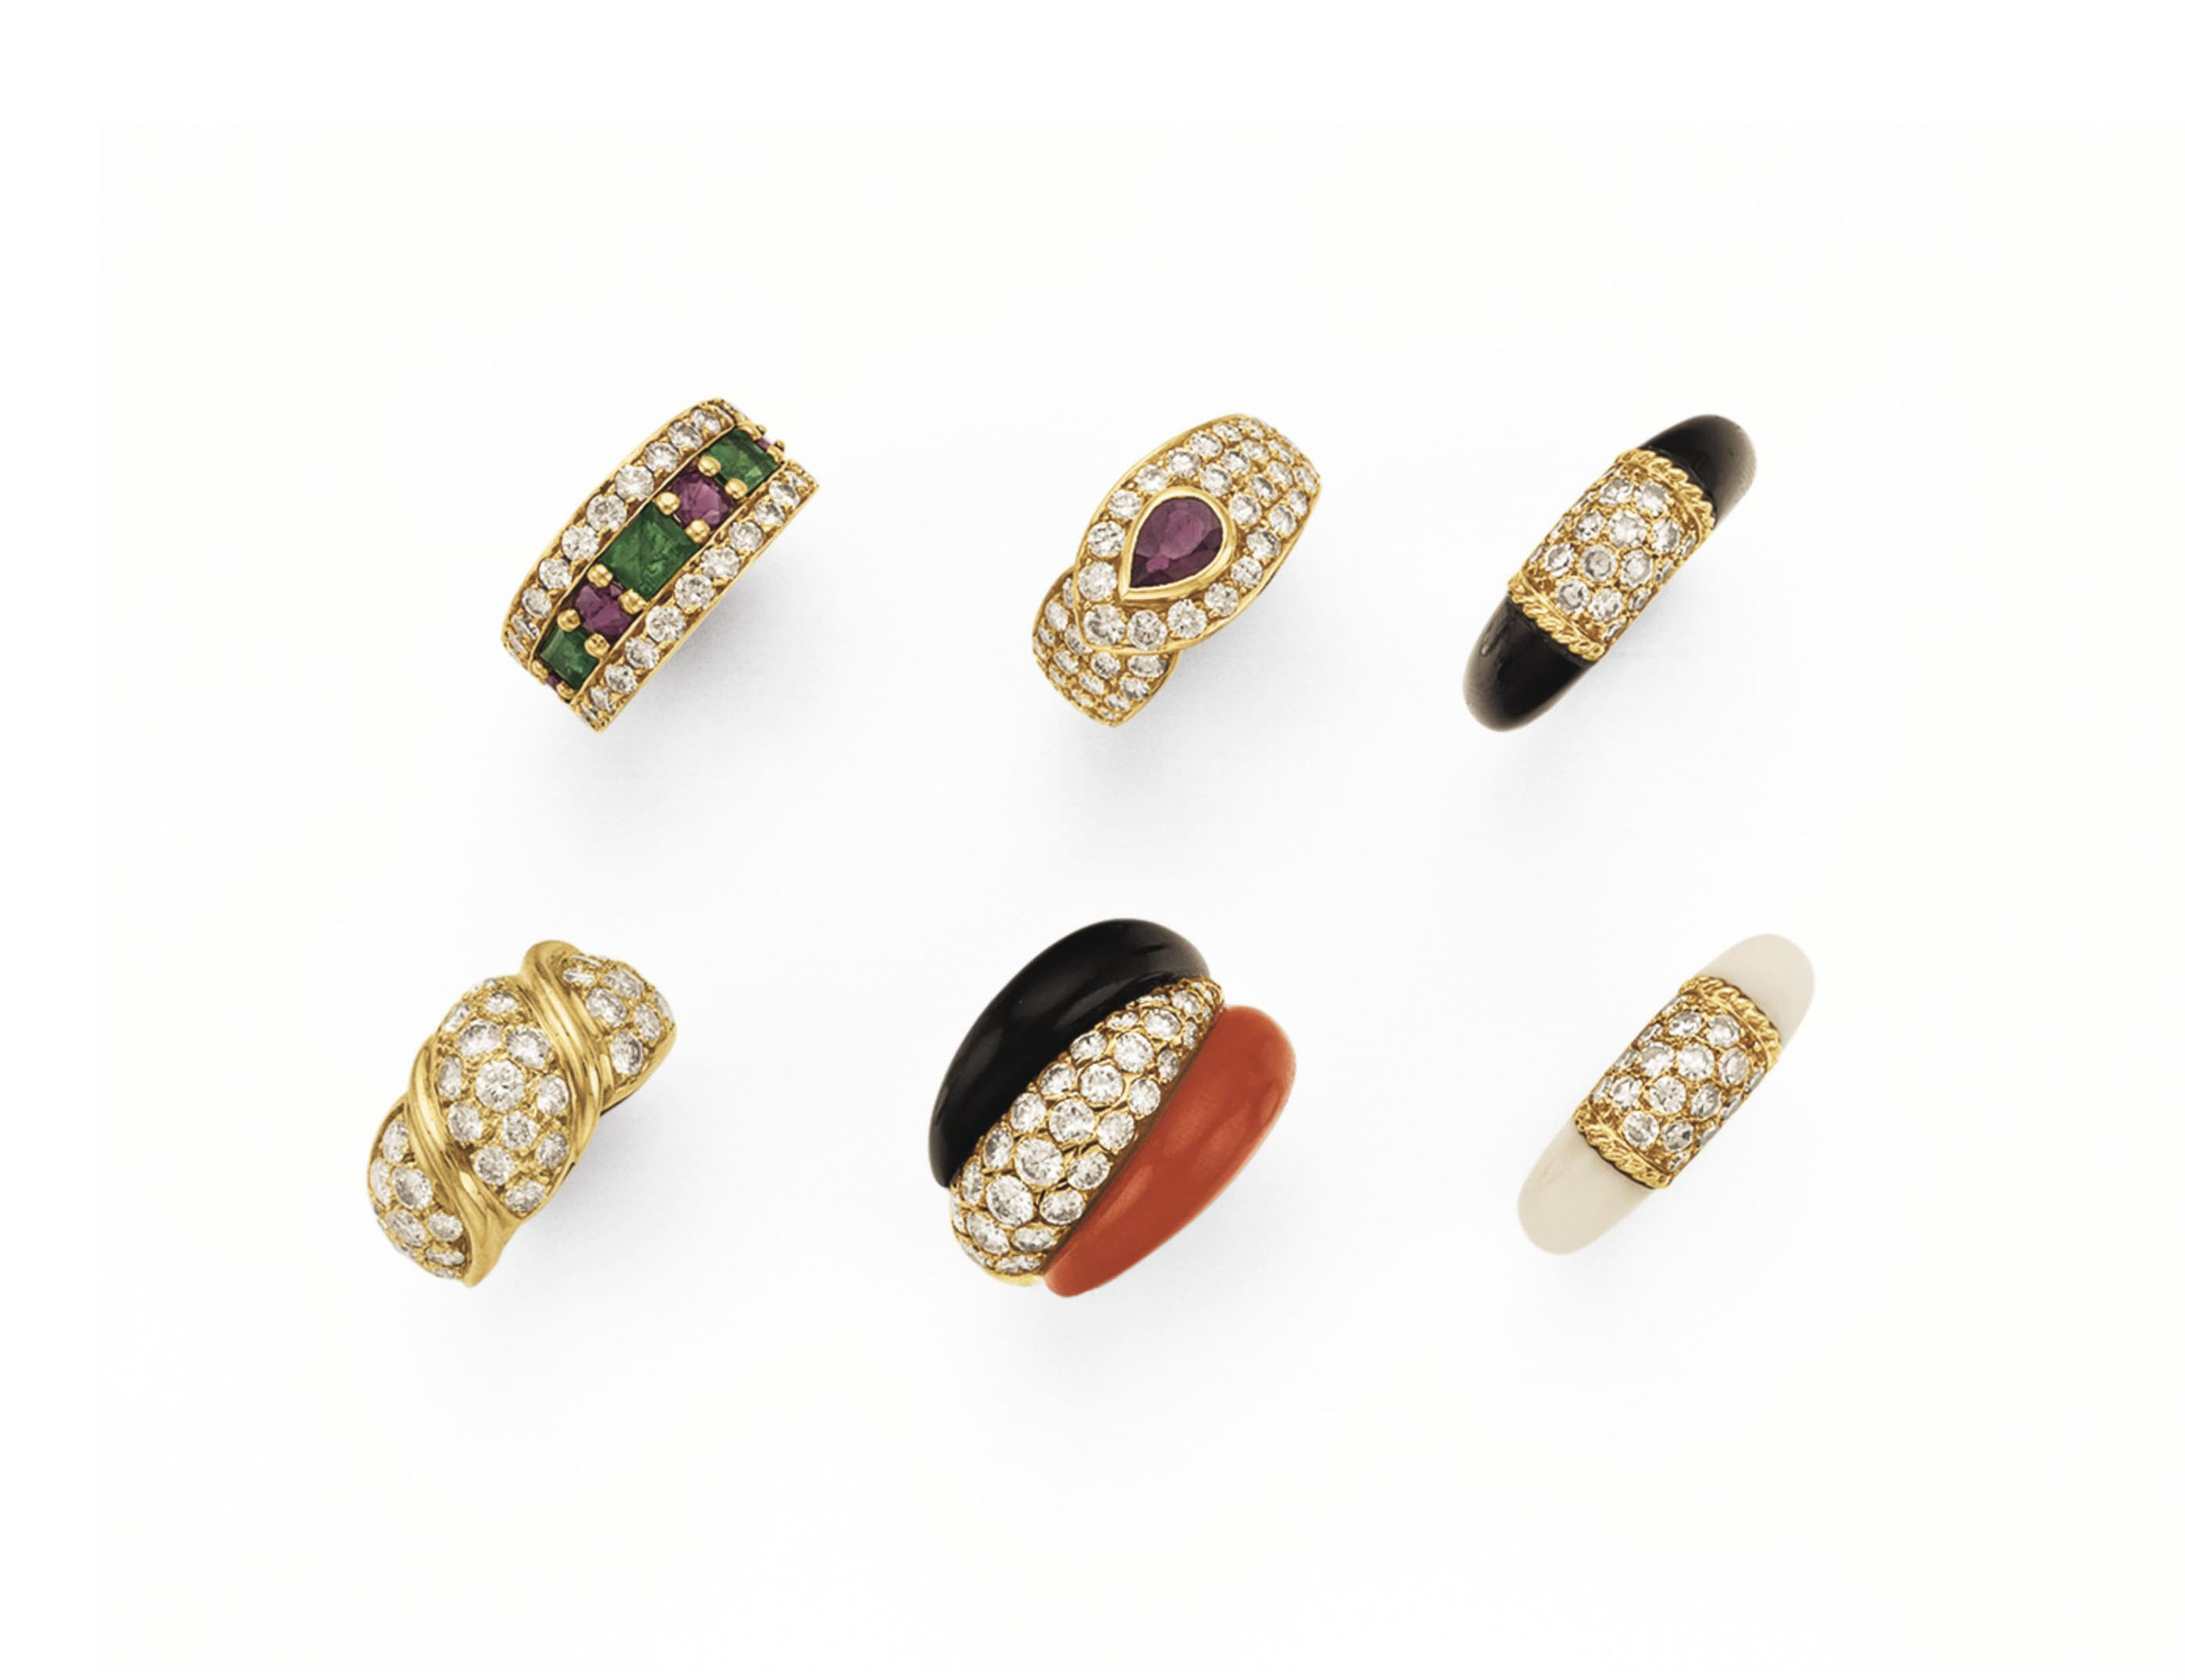 ~A GROUP OF SIX MULTI-GEM RING